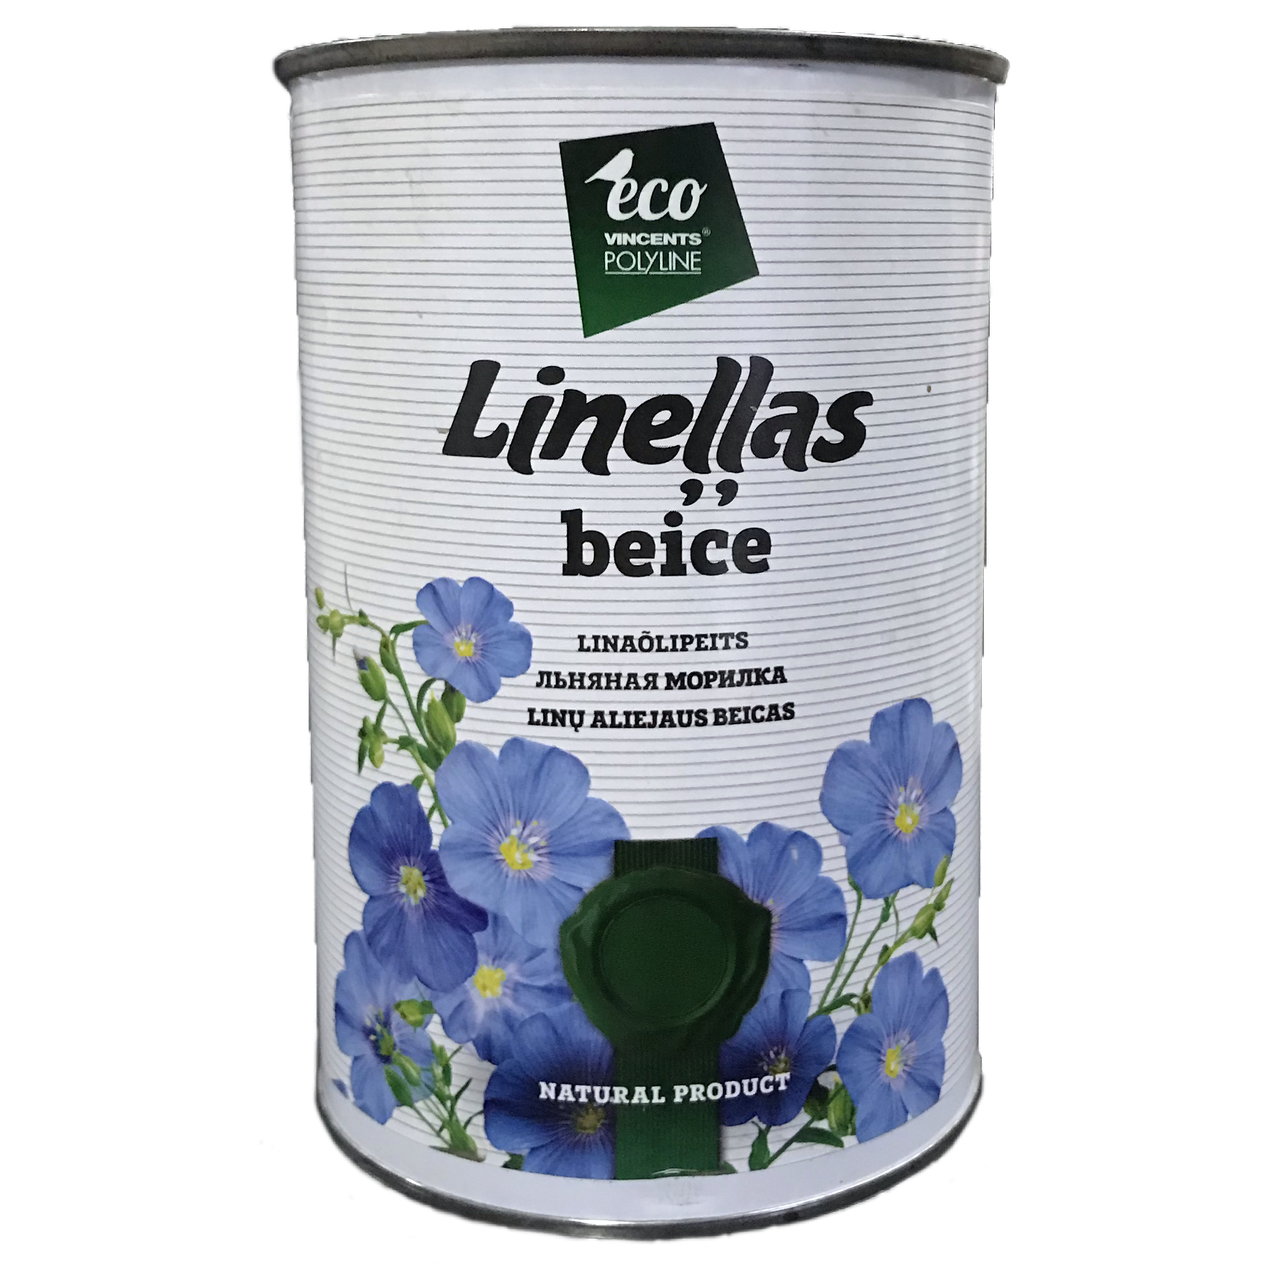 Лляна морилка Vincents Polyline Linellas beice 1л Пісок